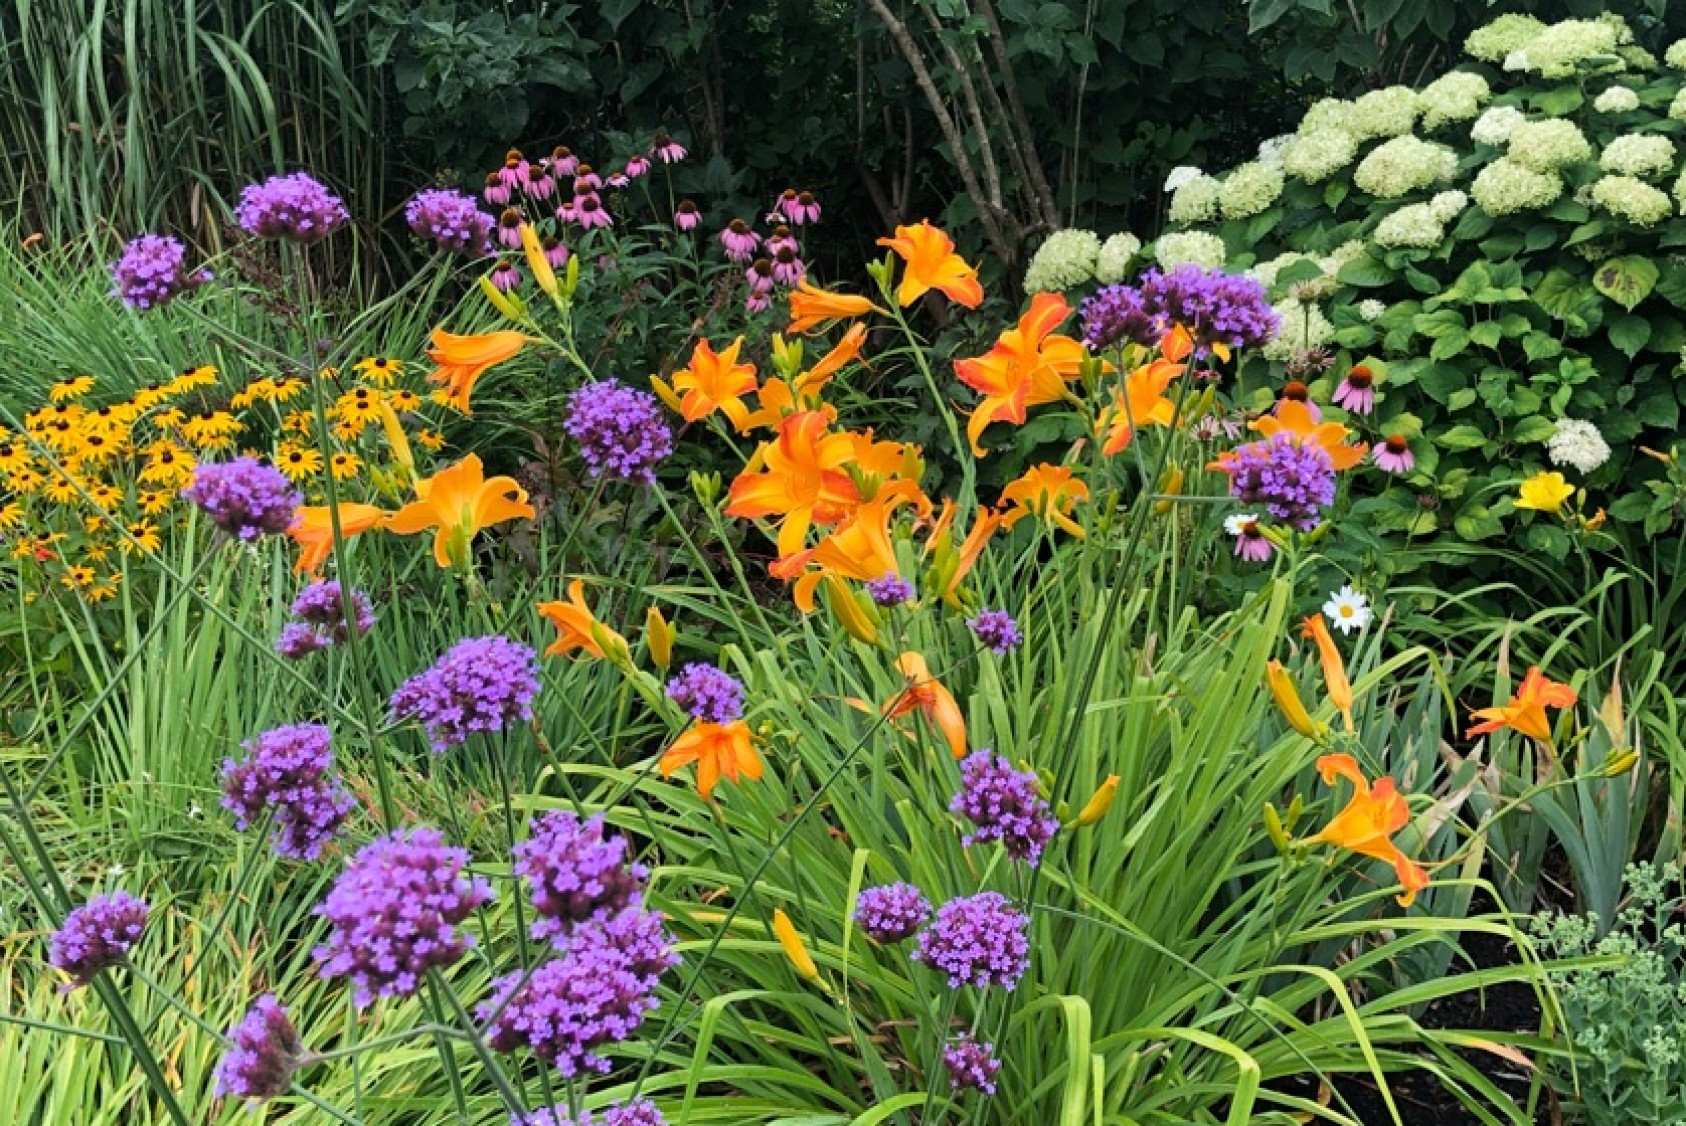 """Some of the colorful blooms in Fred's backyard. """"Gardening is so rewarding,"""" Fred says. """"You see the results of your labor, and it links you to the Earth and its constant renewal and variety."""""""